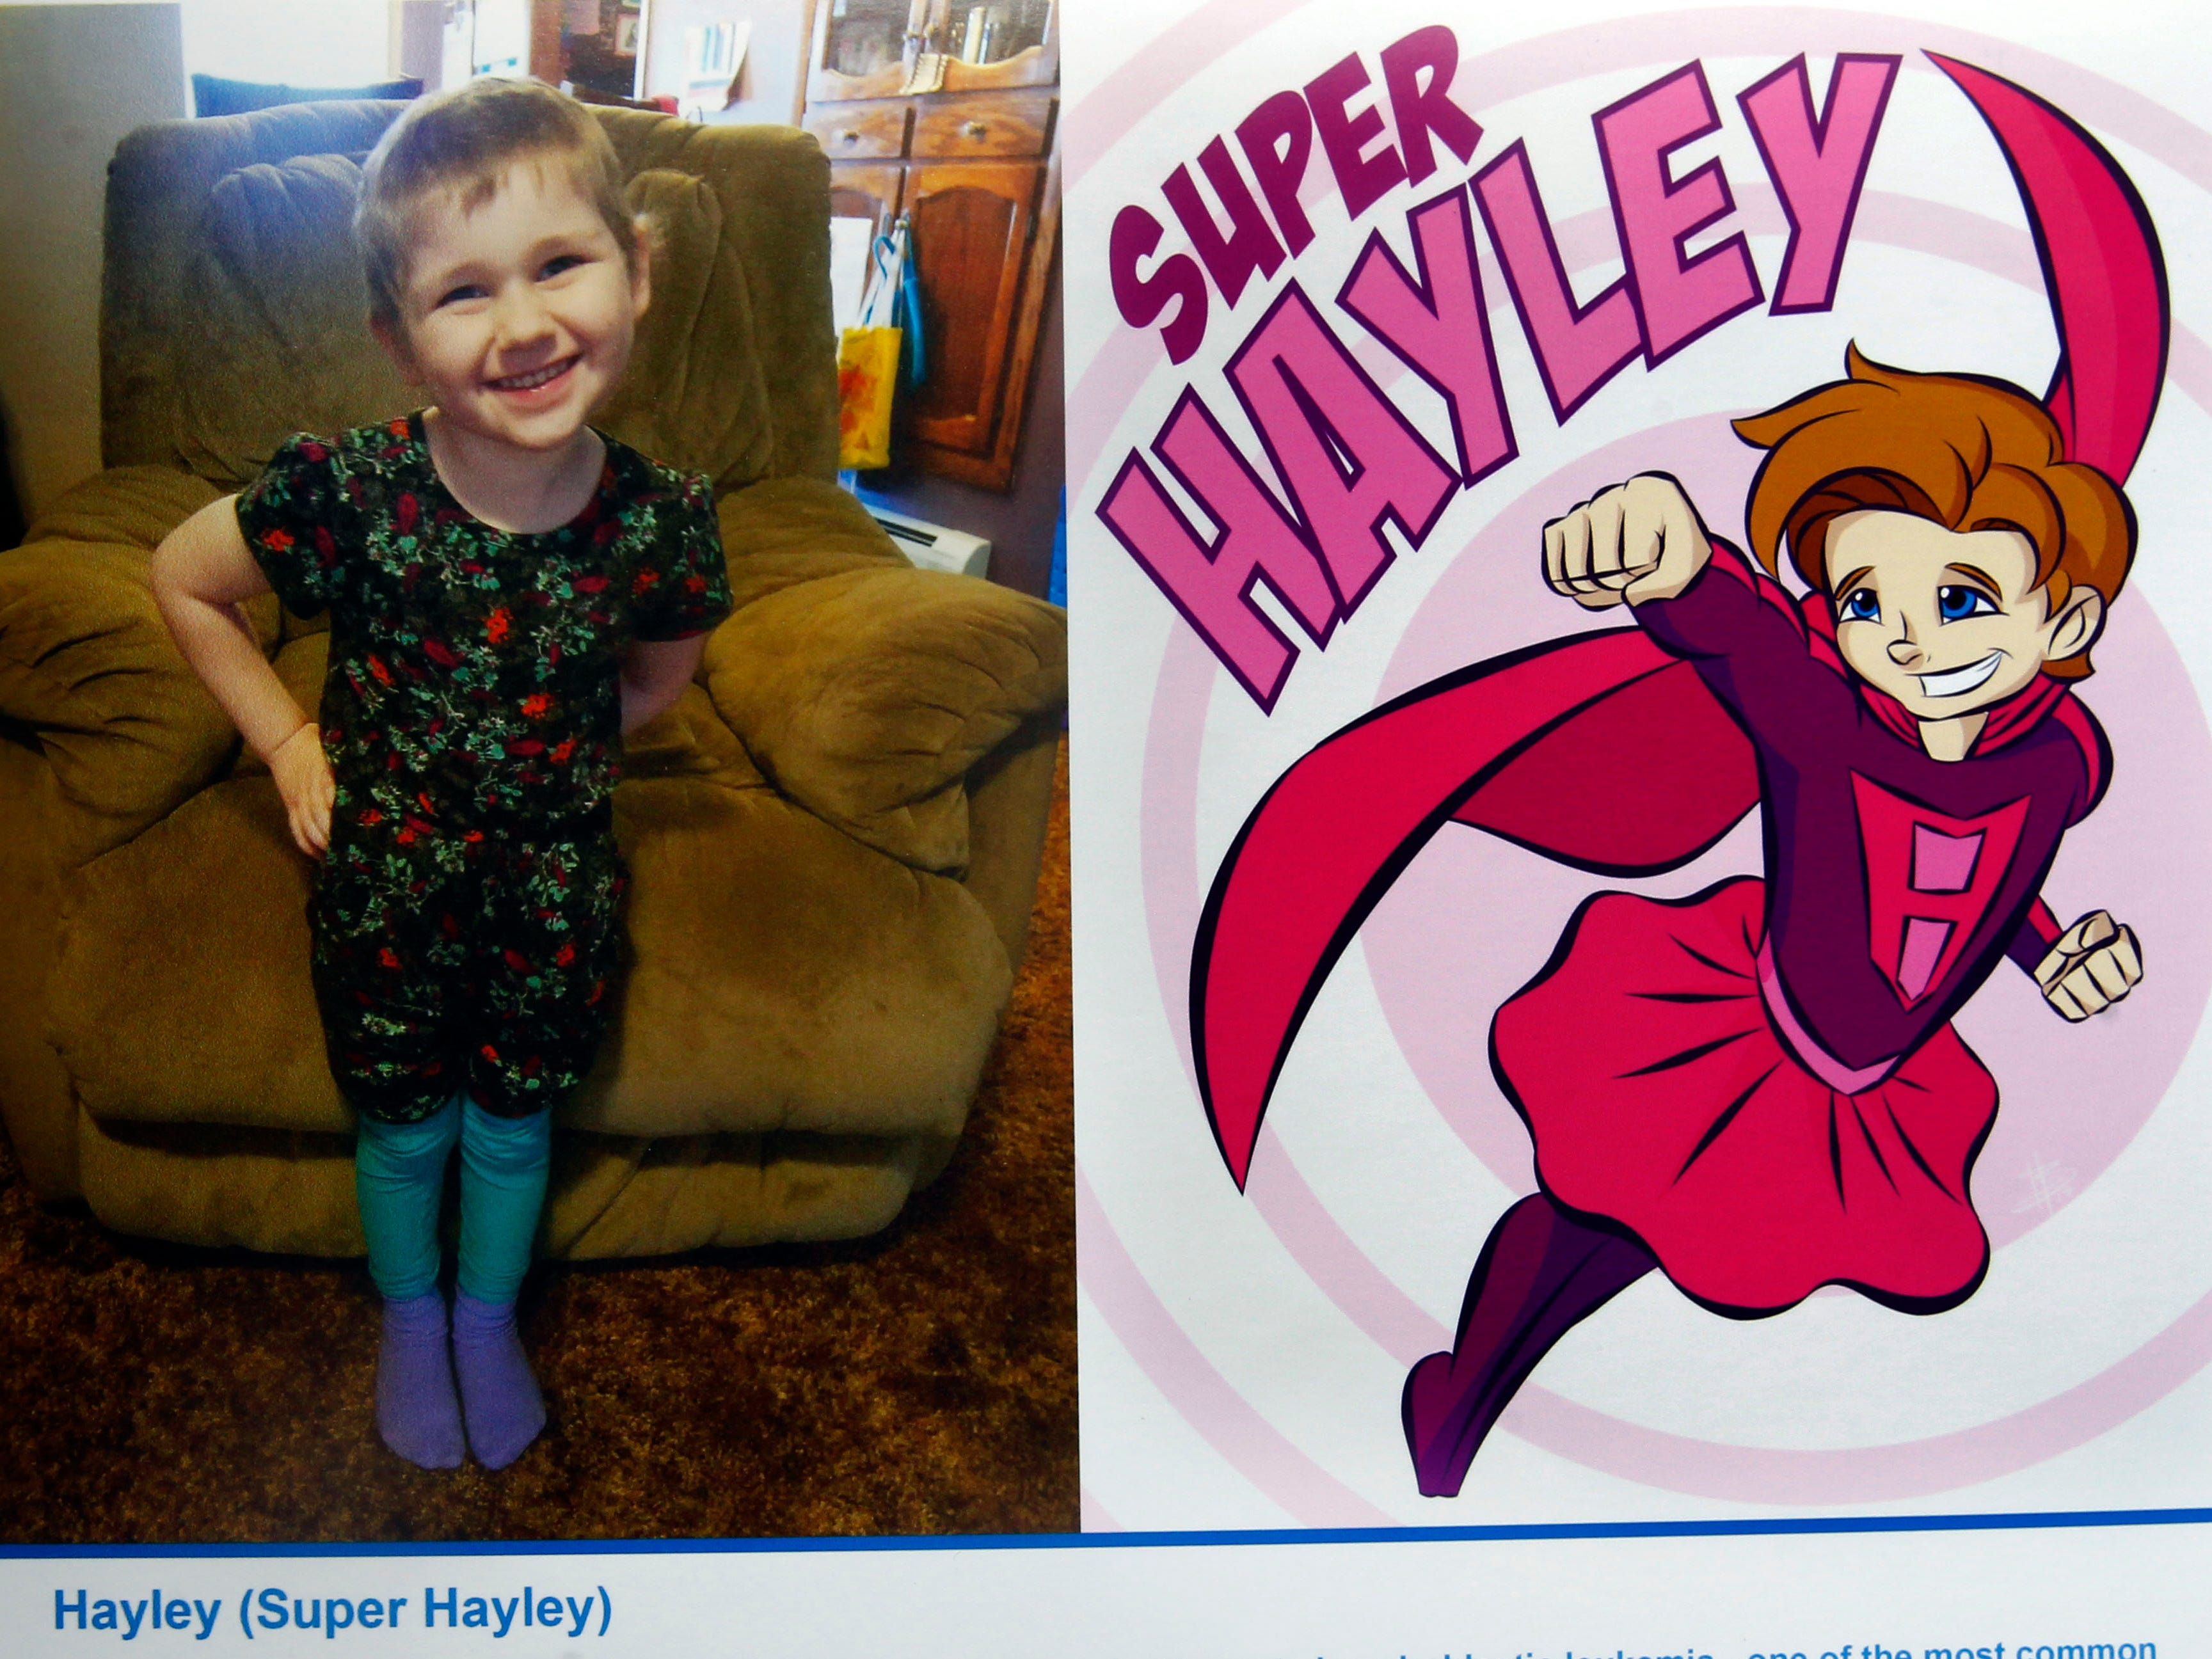 Super Hayley is a superhero identity created by Bryan Dyer, owner of You Are the Hero.